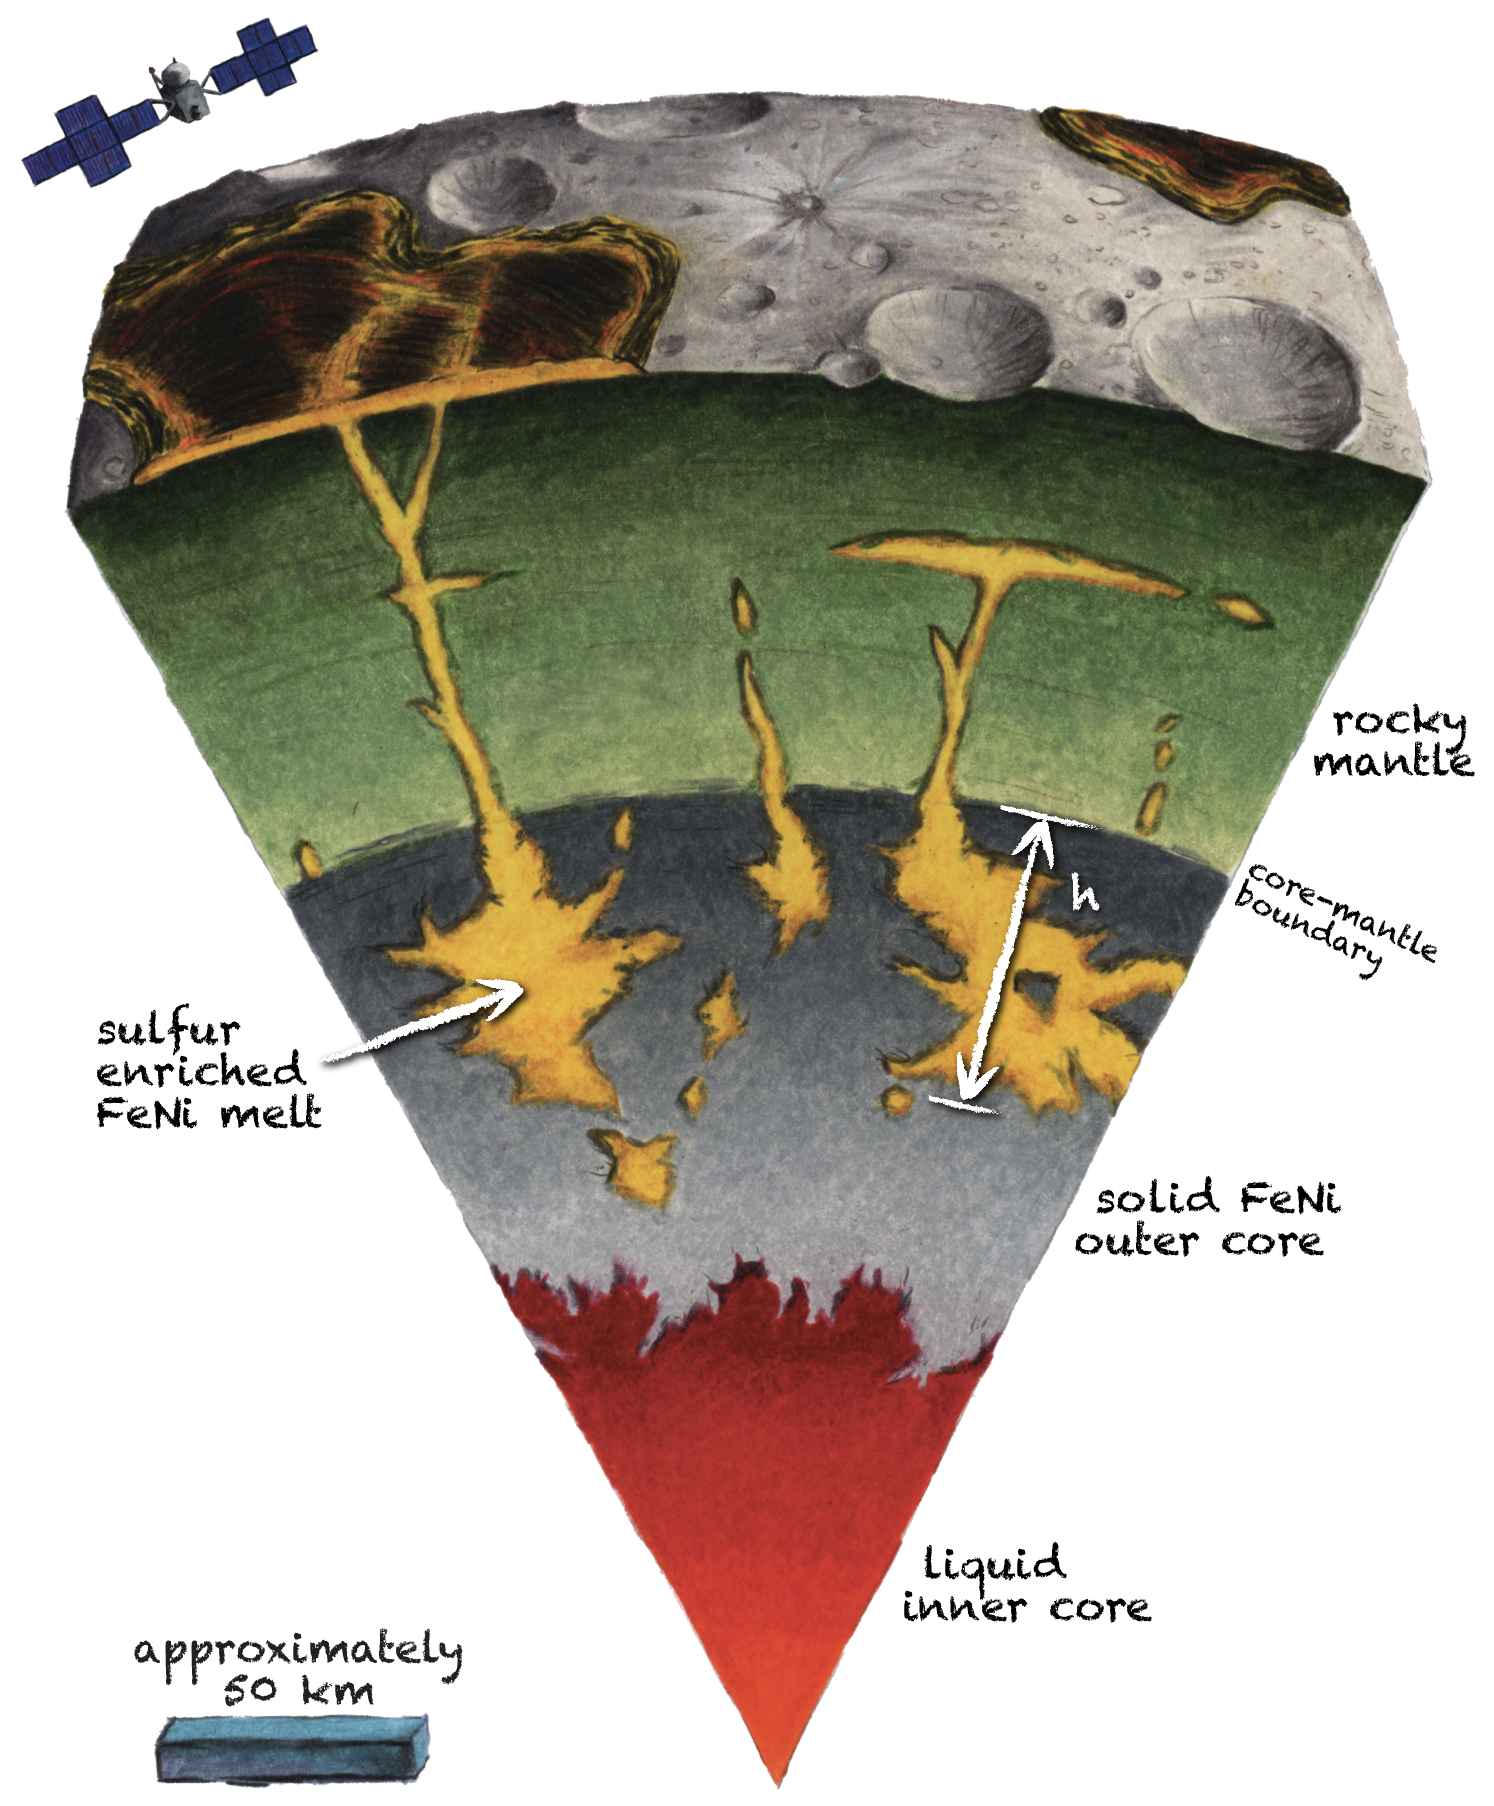 Artistic illustration of Psyche interior structure and the ferrovolcanism process